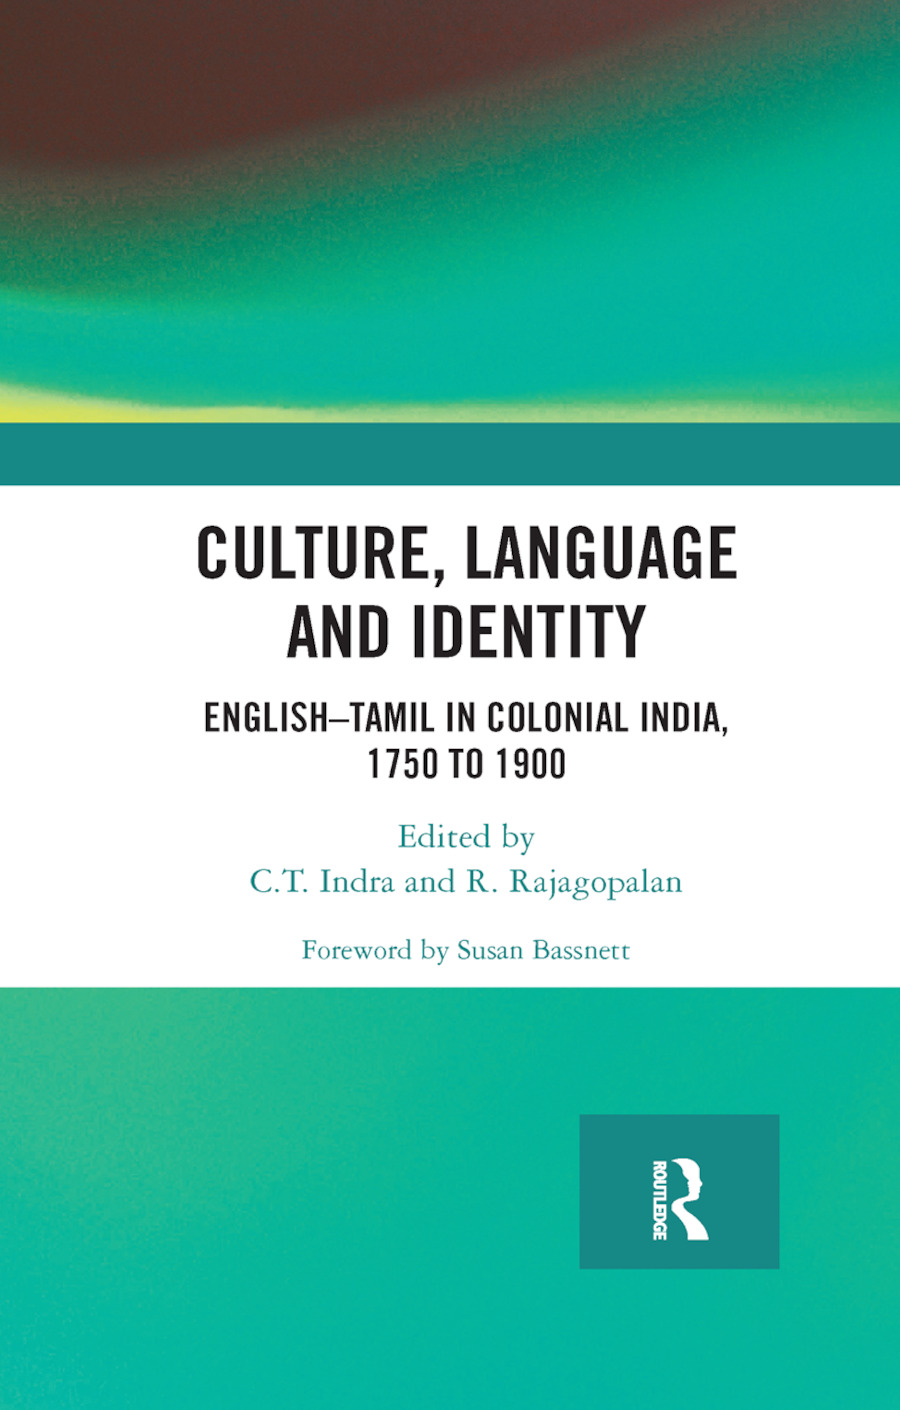 Culture, Language and Identity